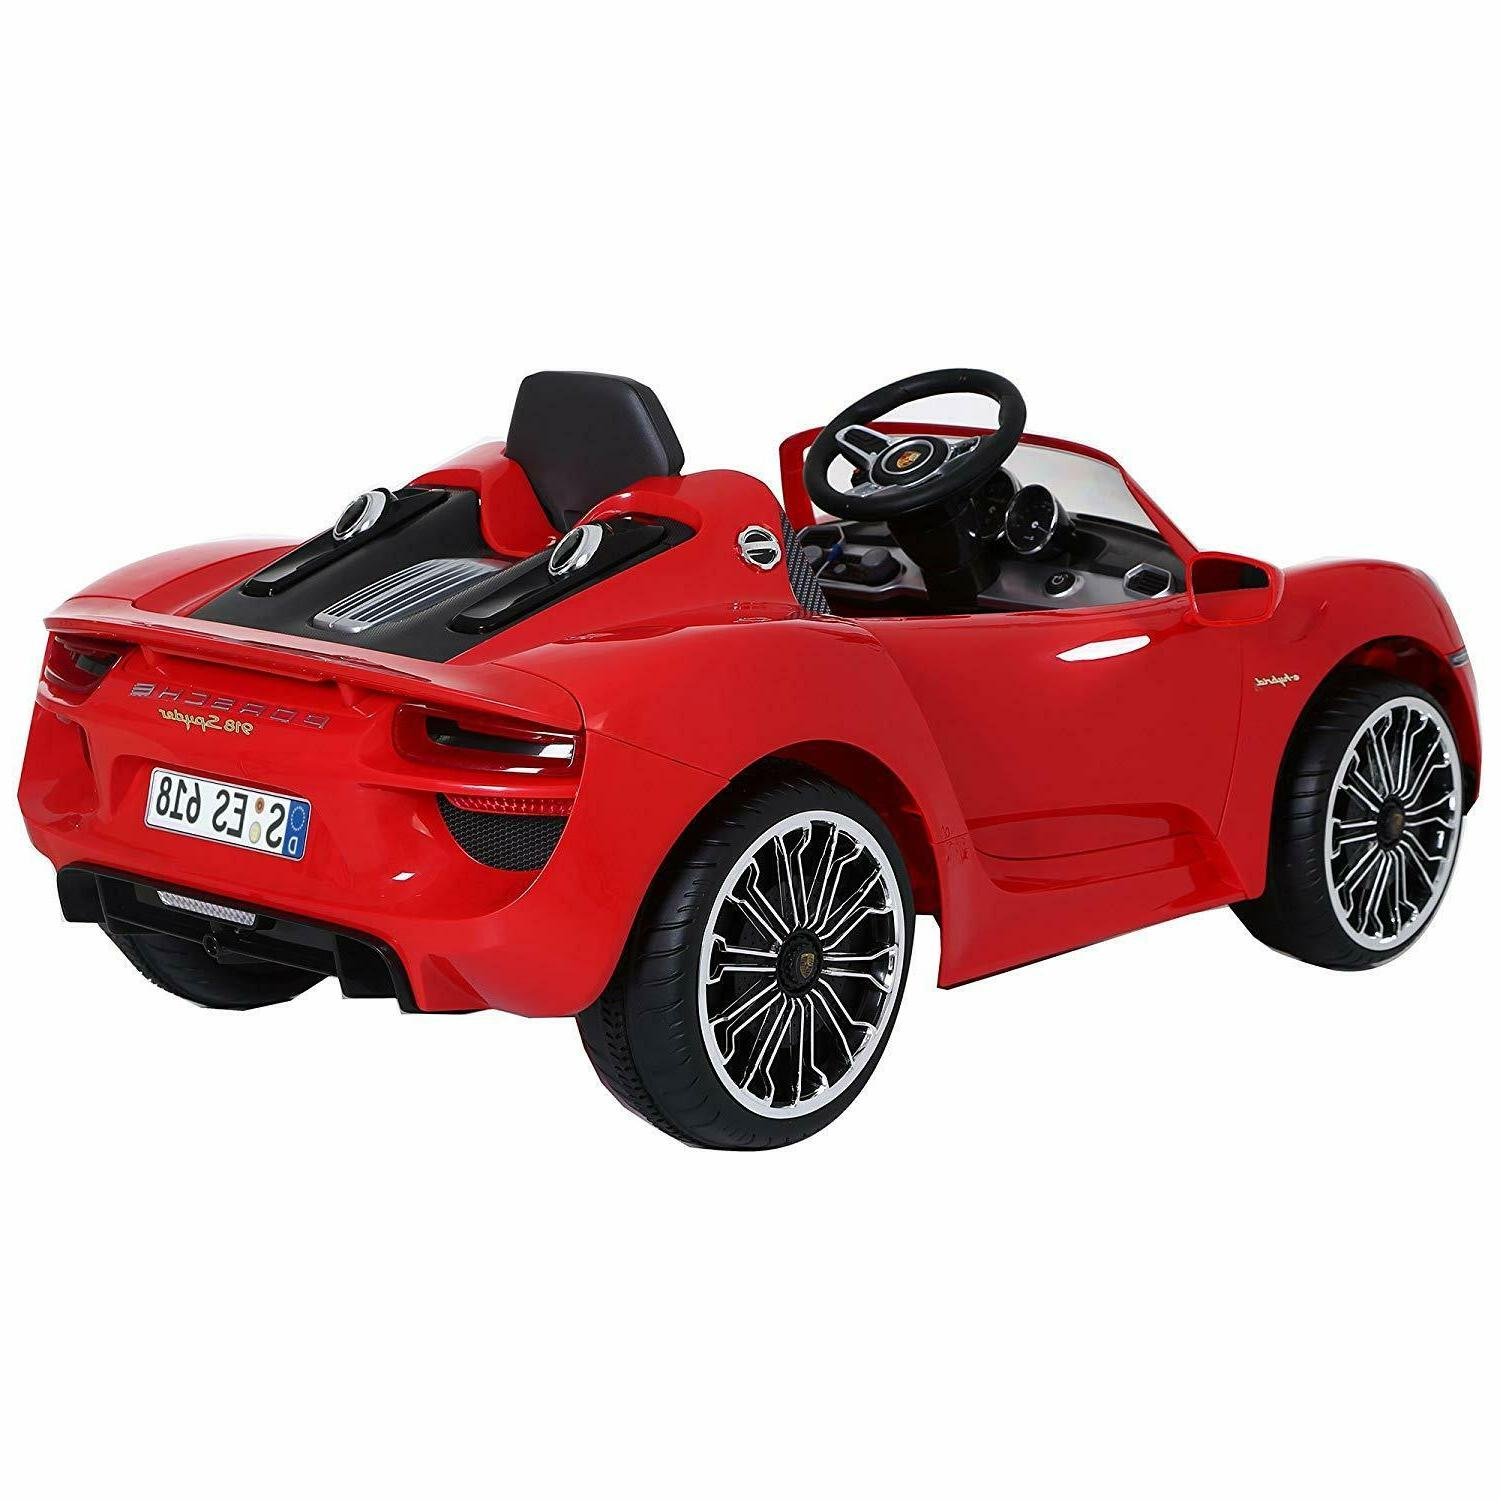 Kids Ride Sport Vehicle Electric Powered Toy Play